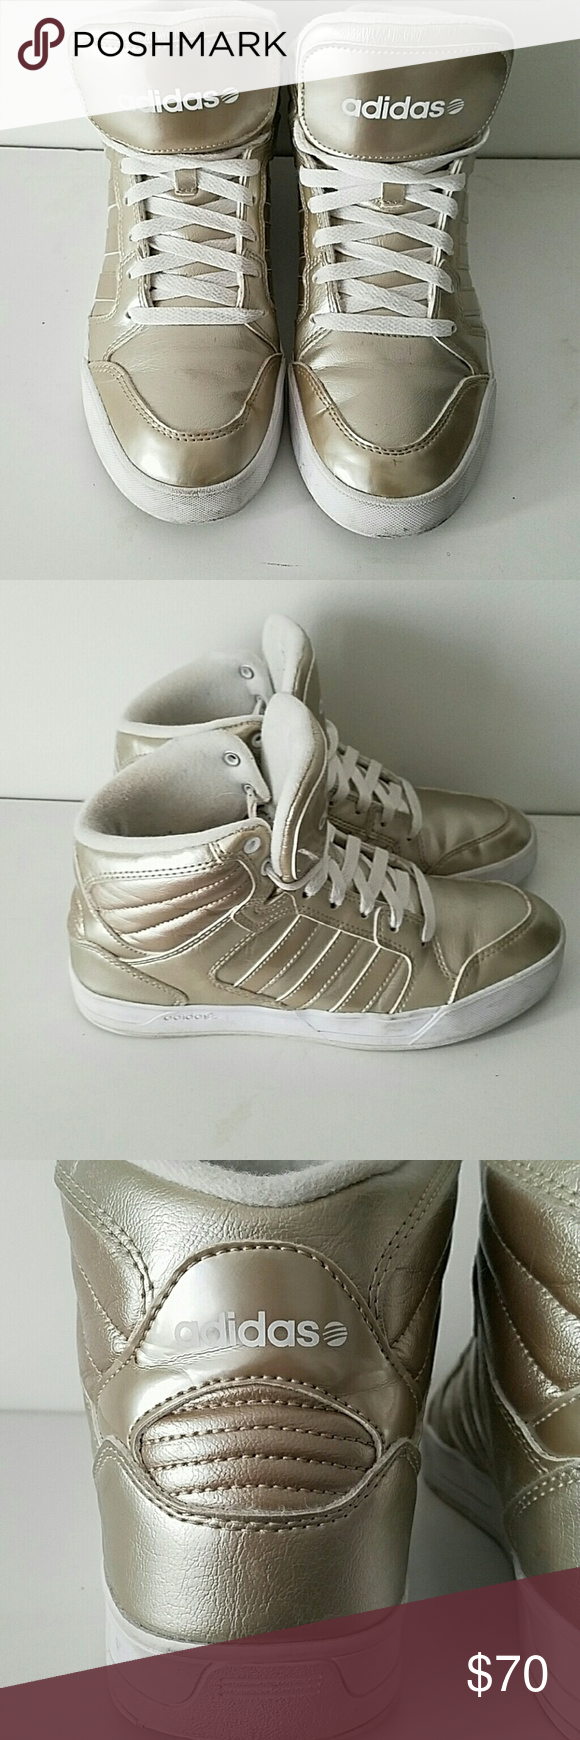 Adidas High Tops Gold Adidas High Tops.  Very good condition.  Very stylish.  Size 8. Adidas Shoes Sneakers